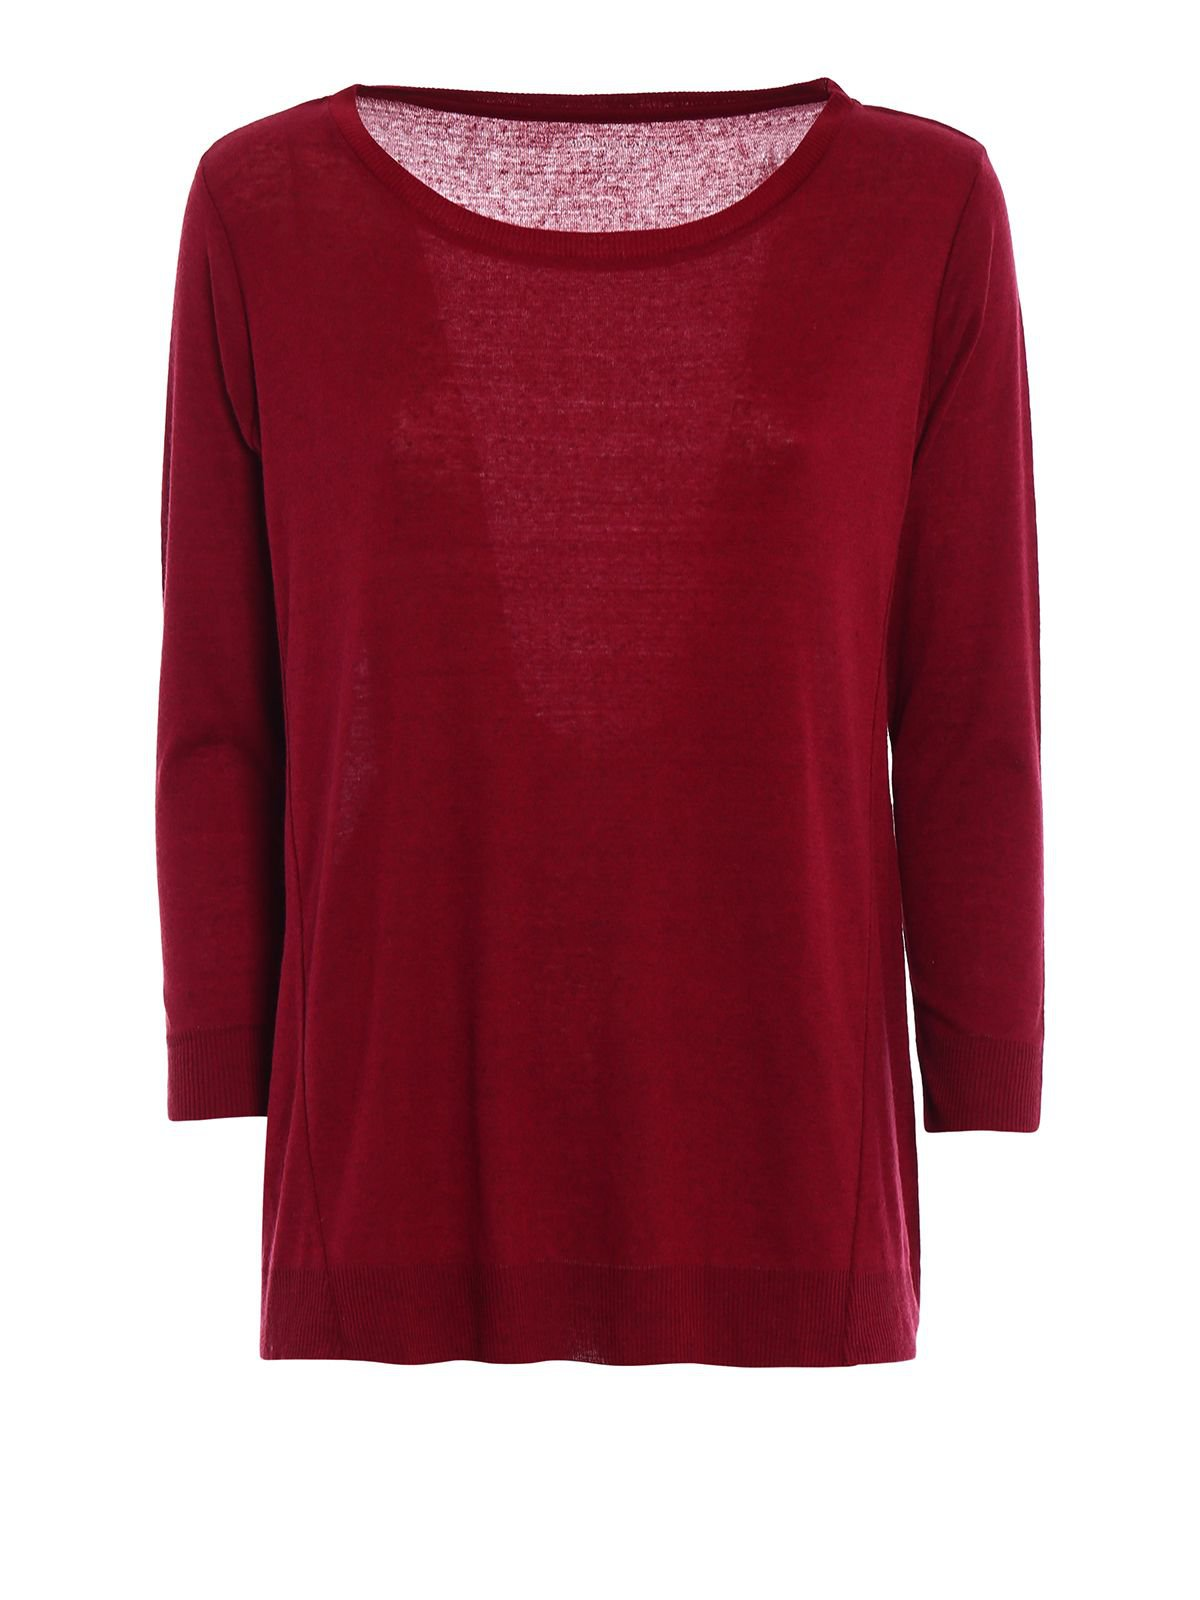 Majestic Filatures Cotton And Cashmere Blend Sweater